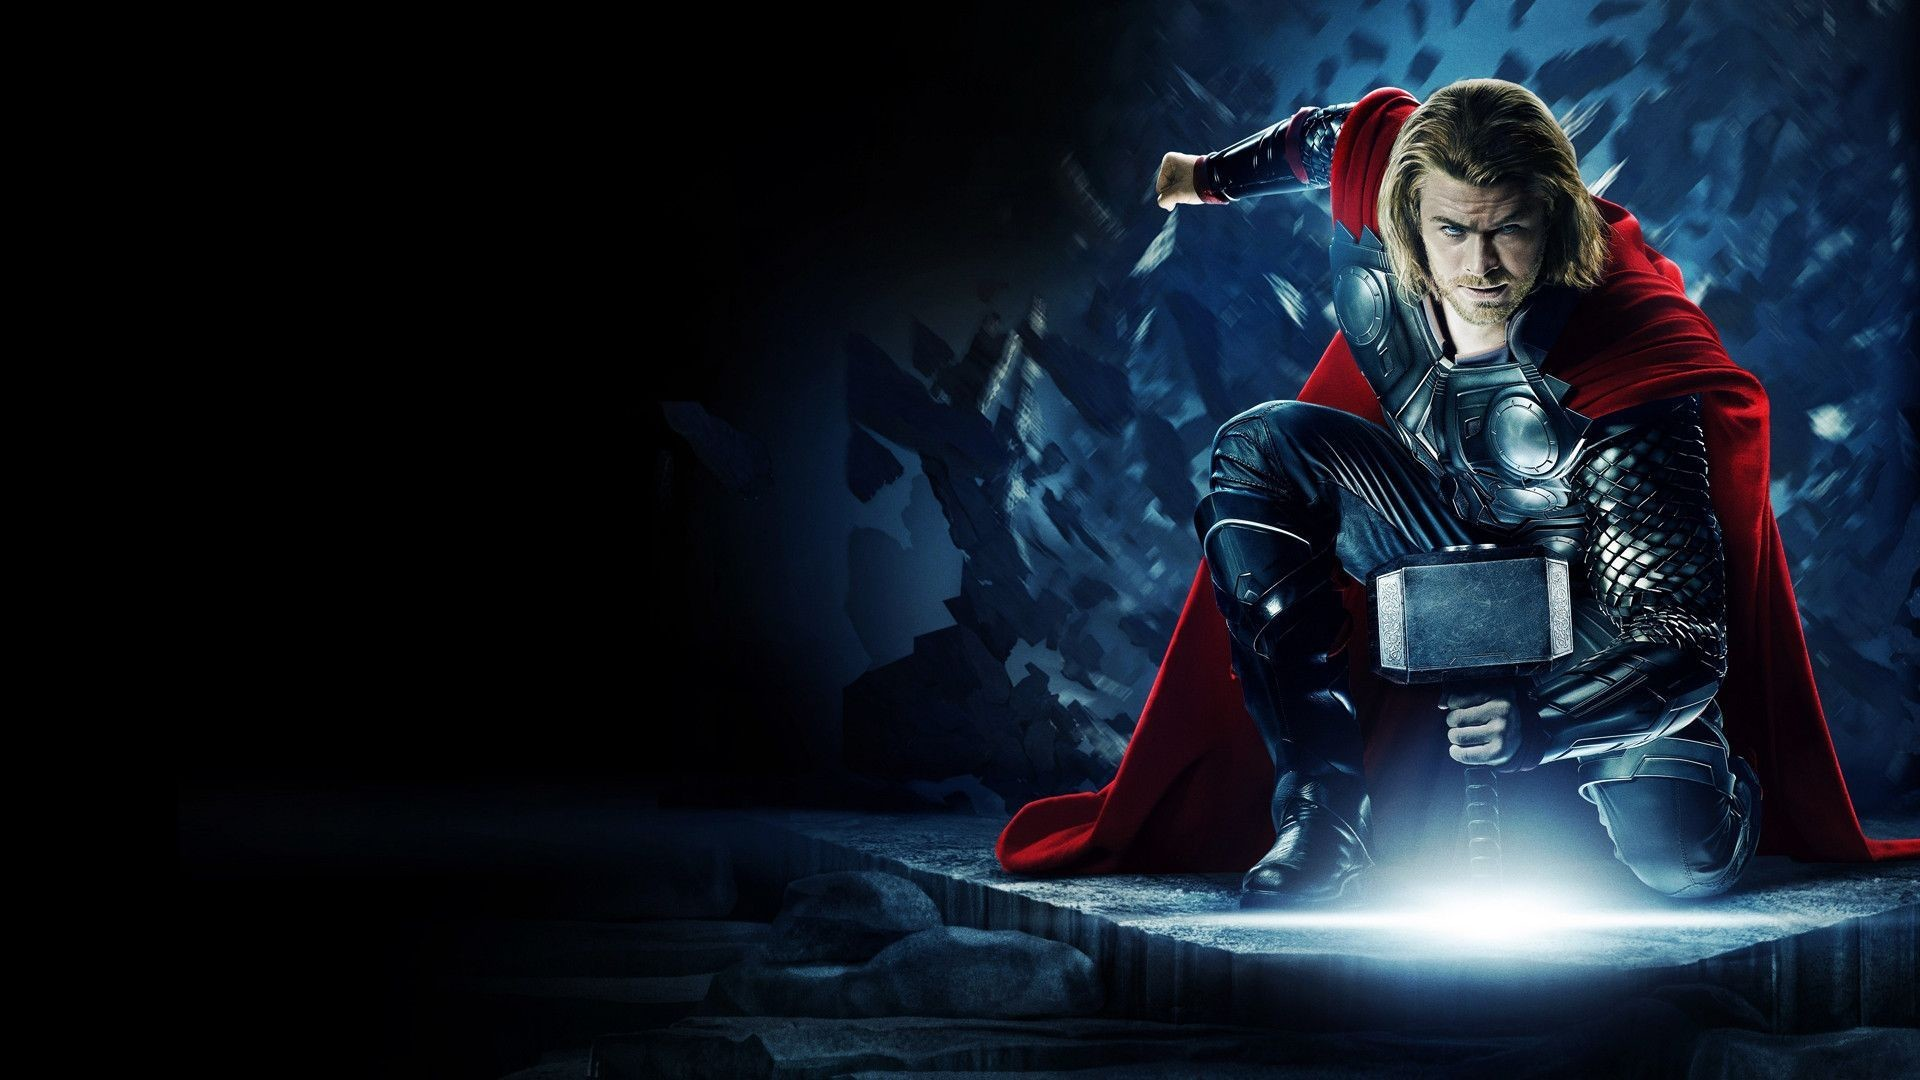 THOR Movie Multi Monitor Wallpapers HD Wallpapers 1920×1200 Thor HD  Wallpapers (35 Wallpapers